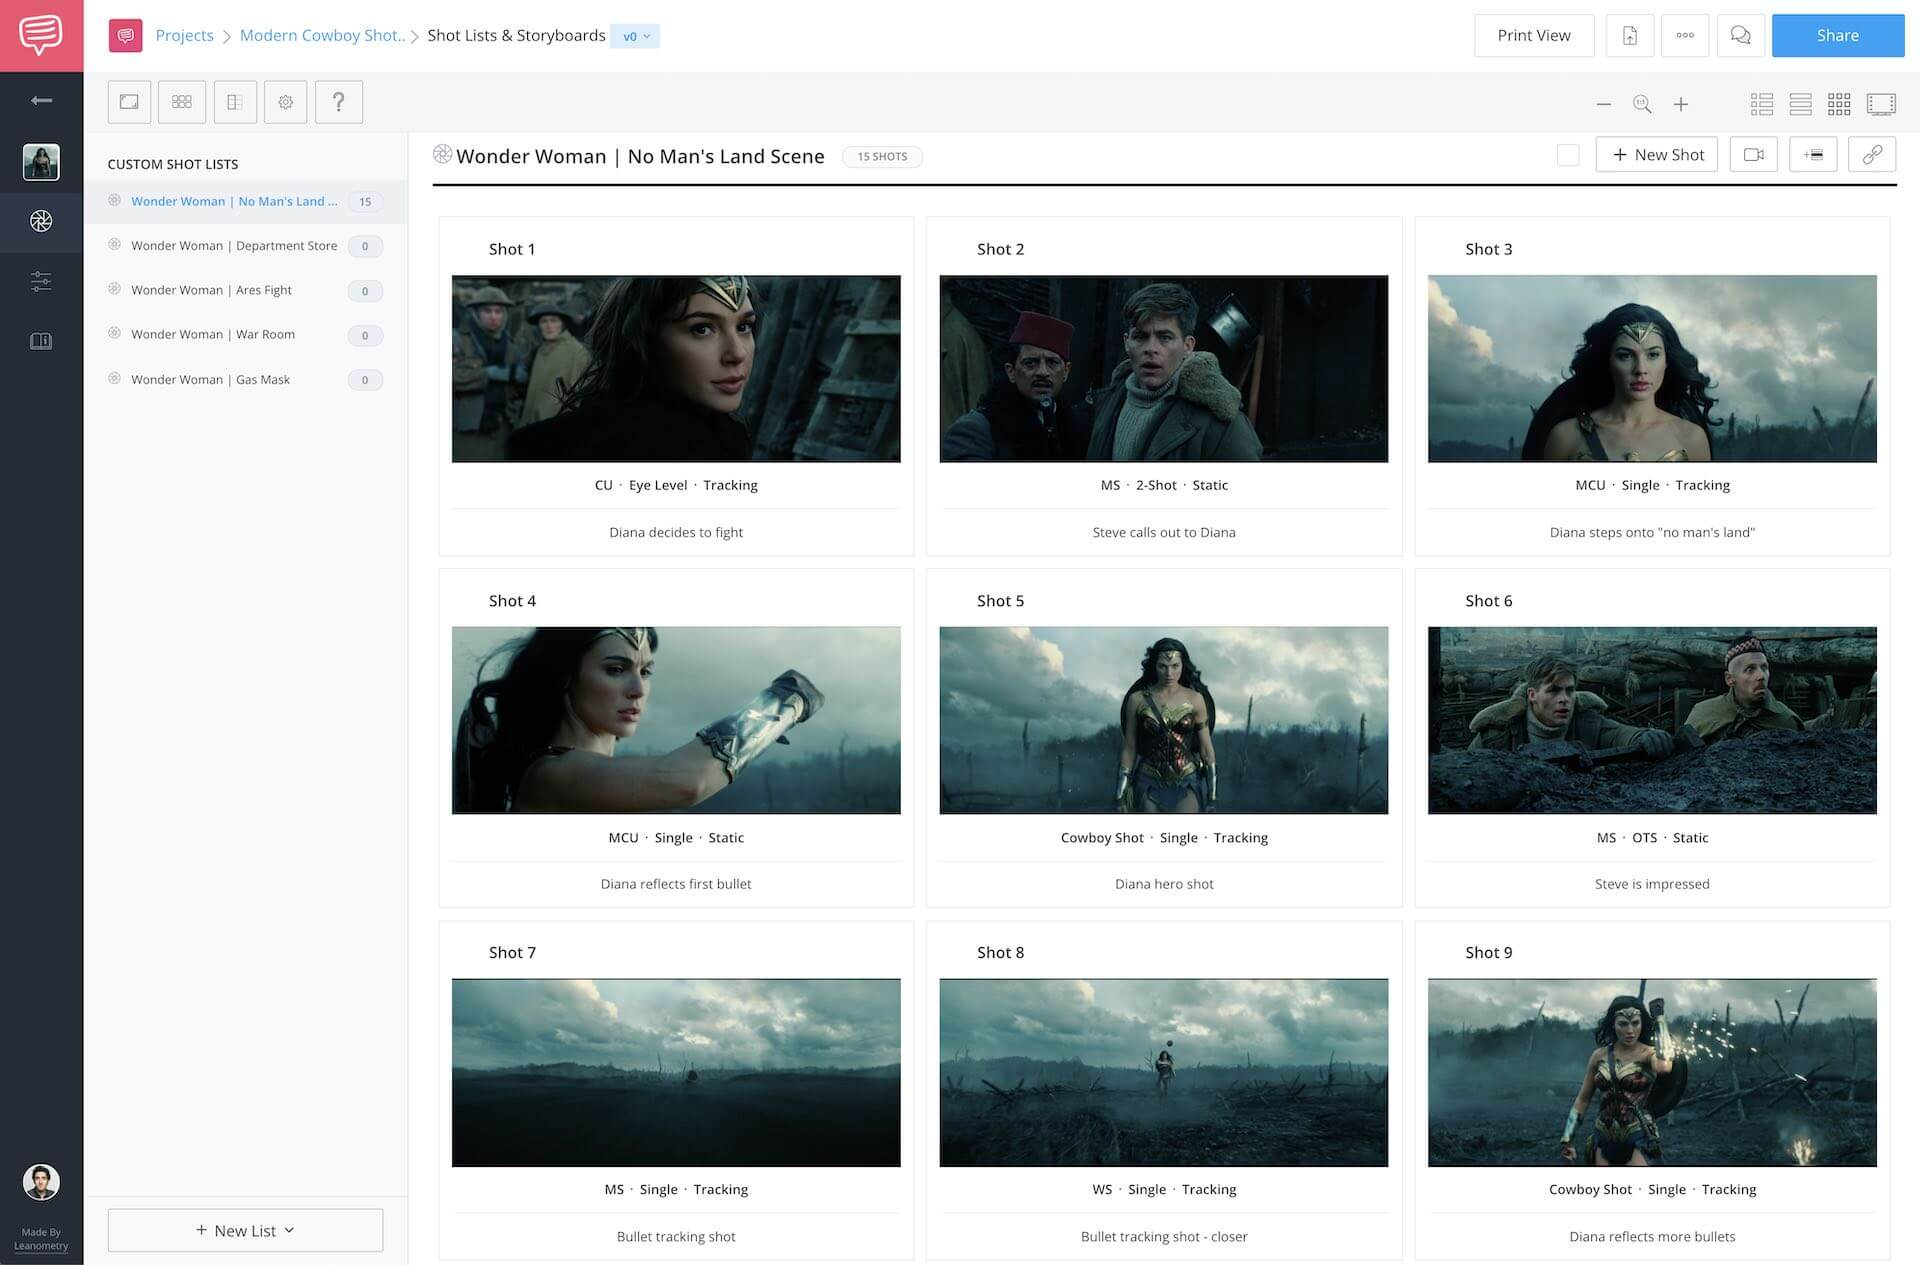 Storyboard Creator - Free Movie Storyboard - StudioBinder Storyboard Maker